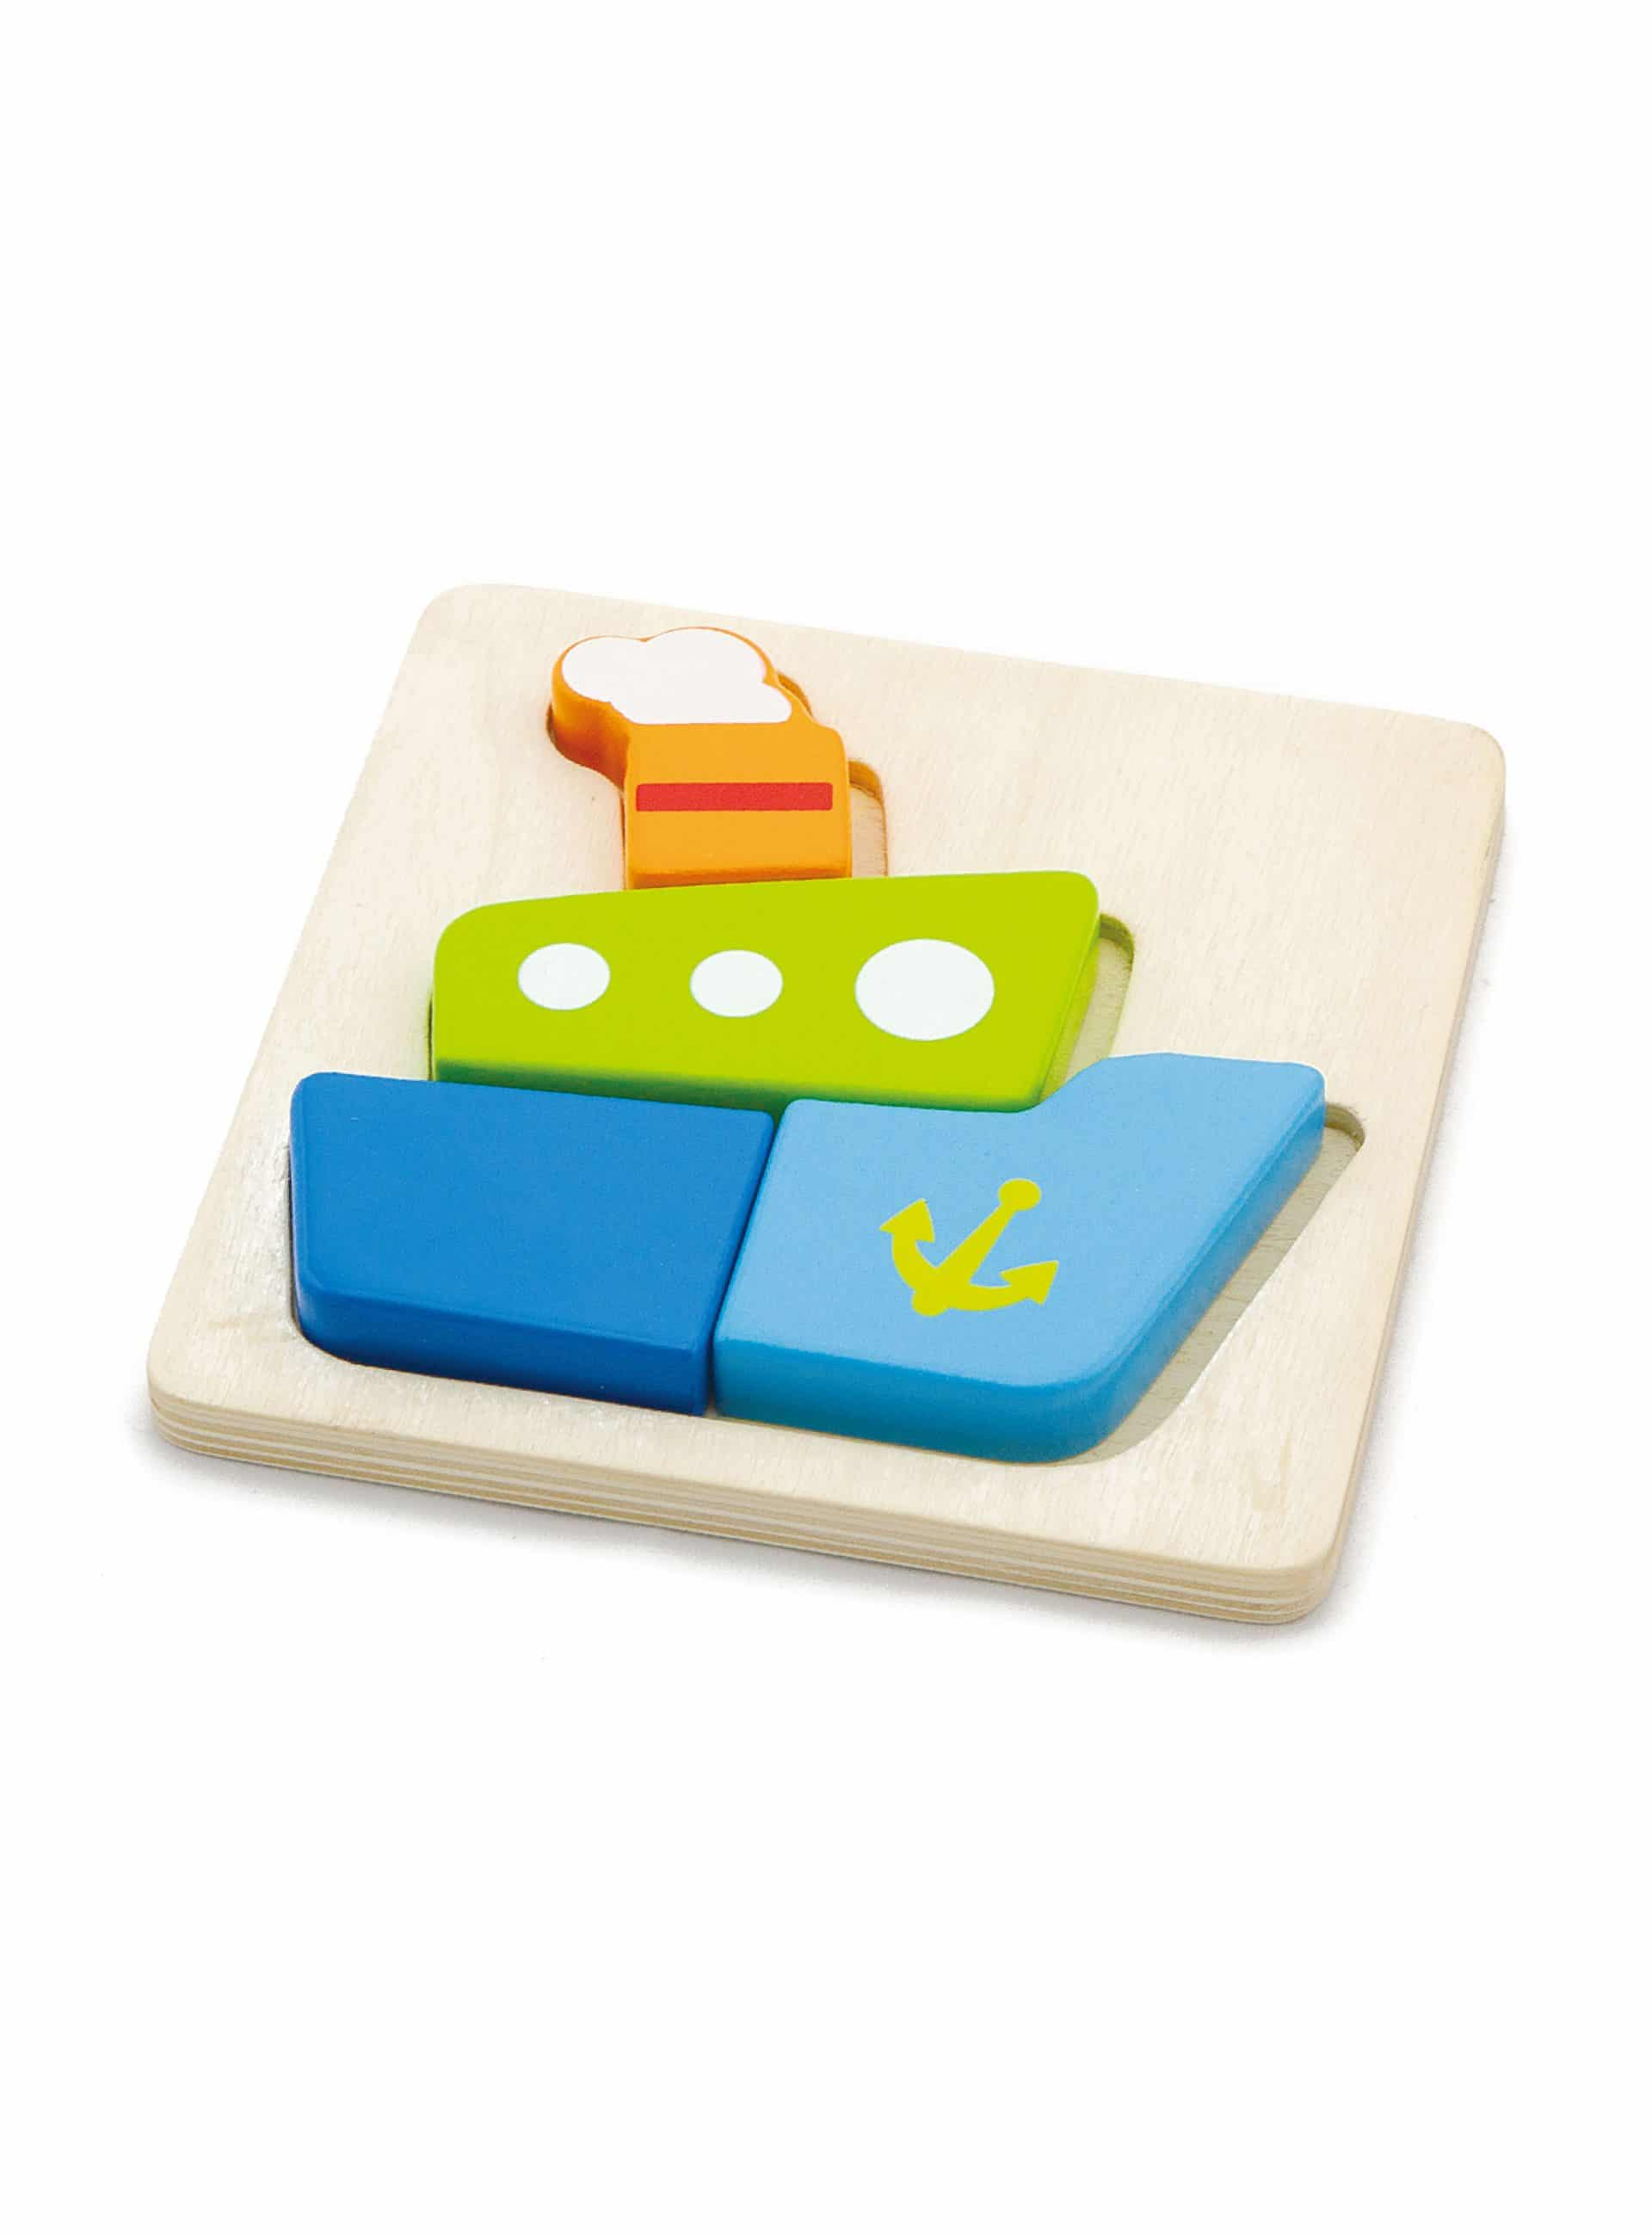 Four piece chunky wooden block shippuzzle